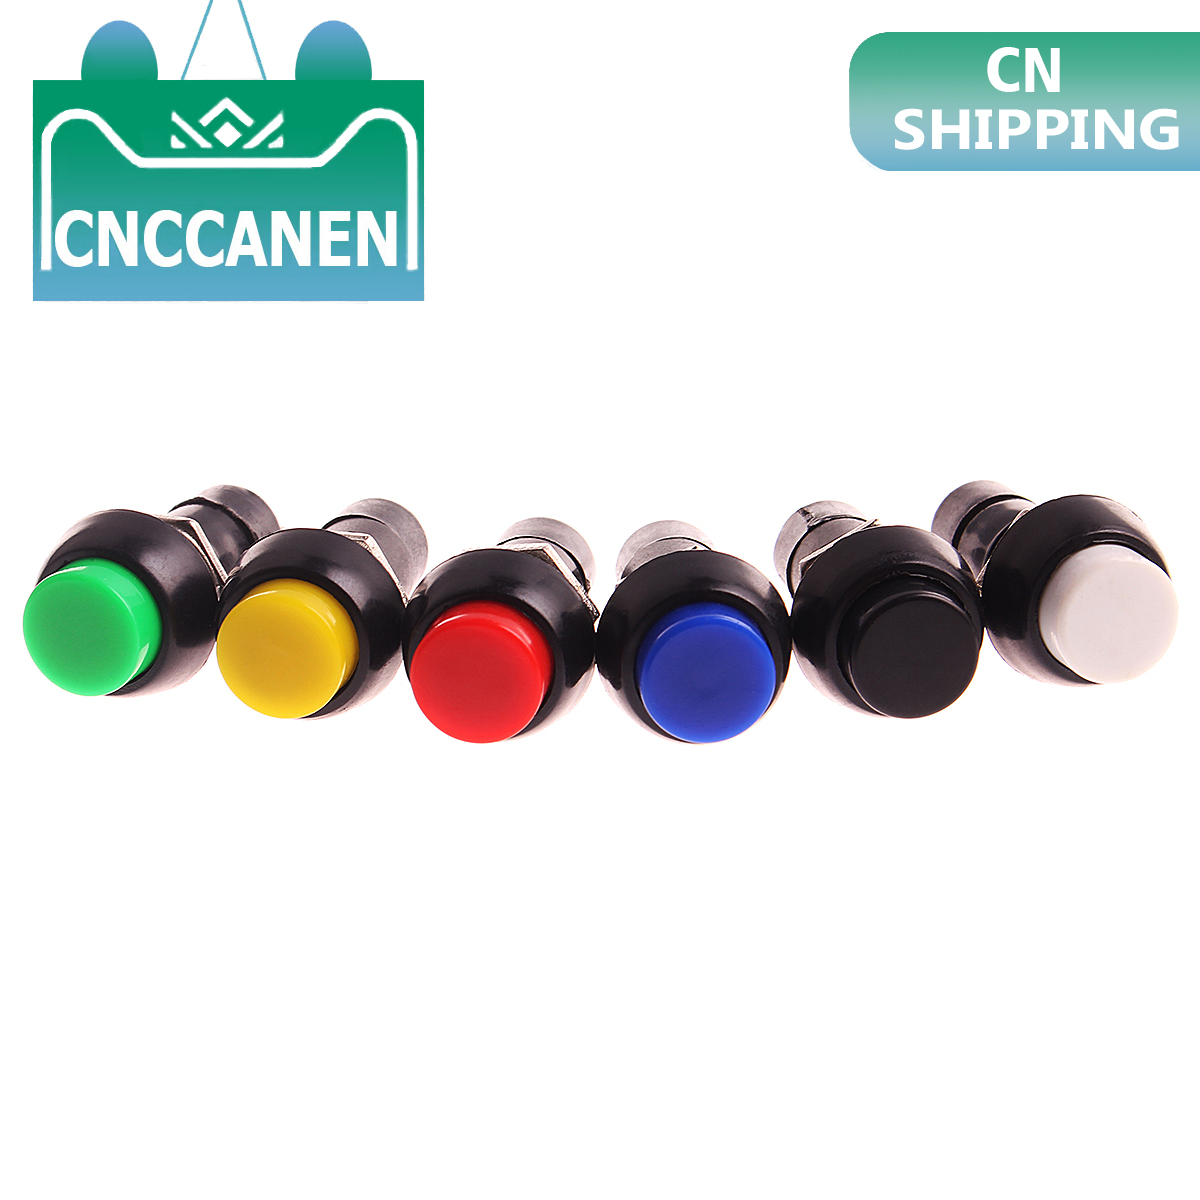 1PC PBS-11A PBS-11B 12mm Self-locking Self-Recovery Plastic Push Button Switch Momentary 3A 250V AC 2PIN 6Color